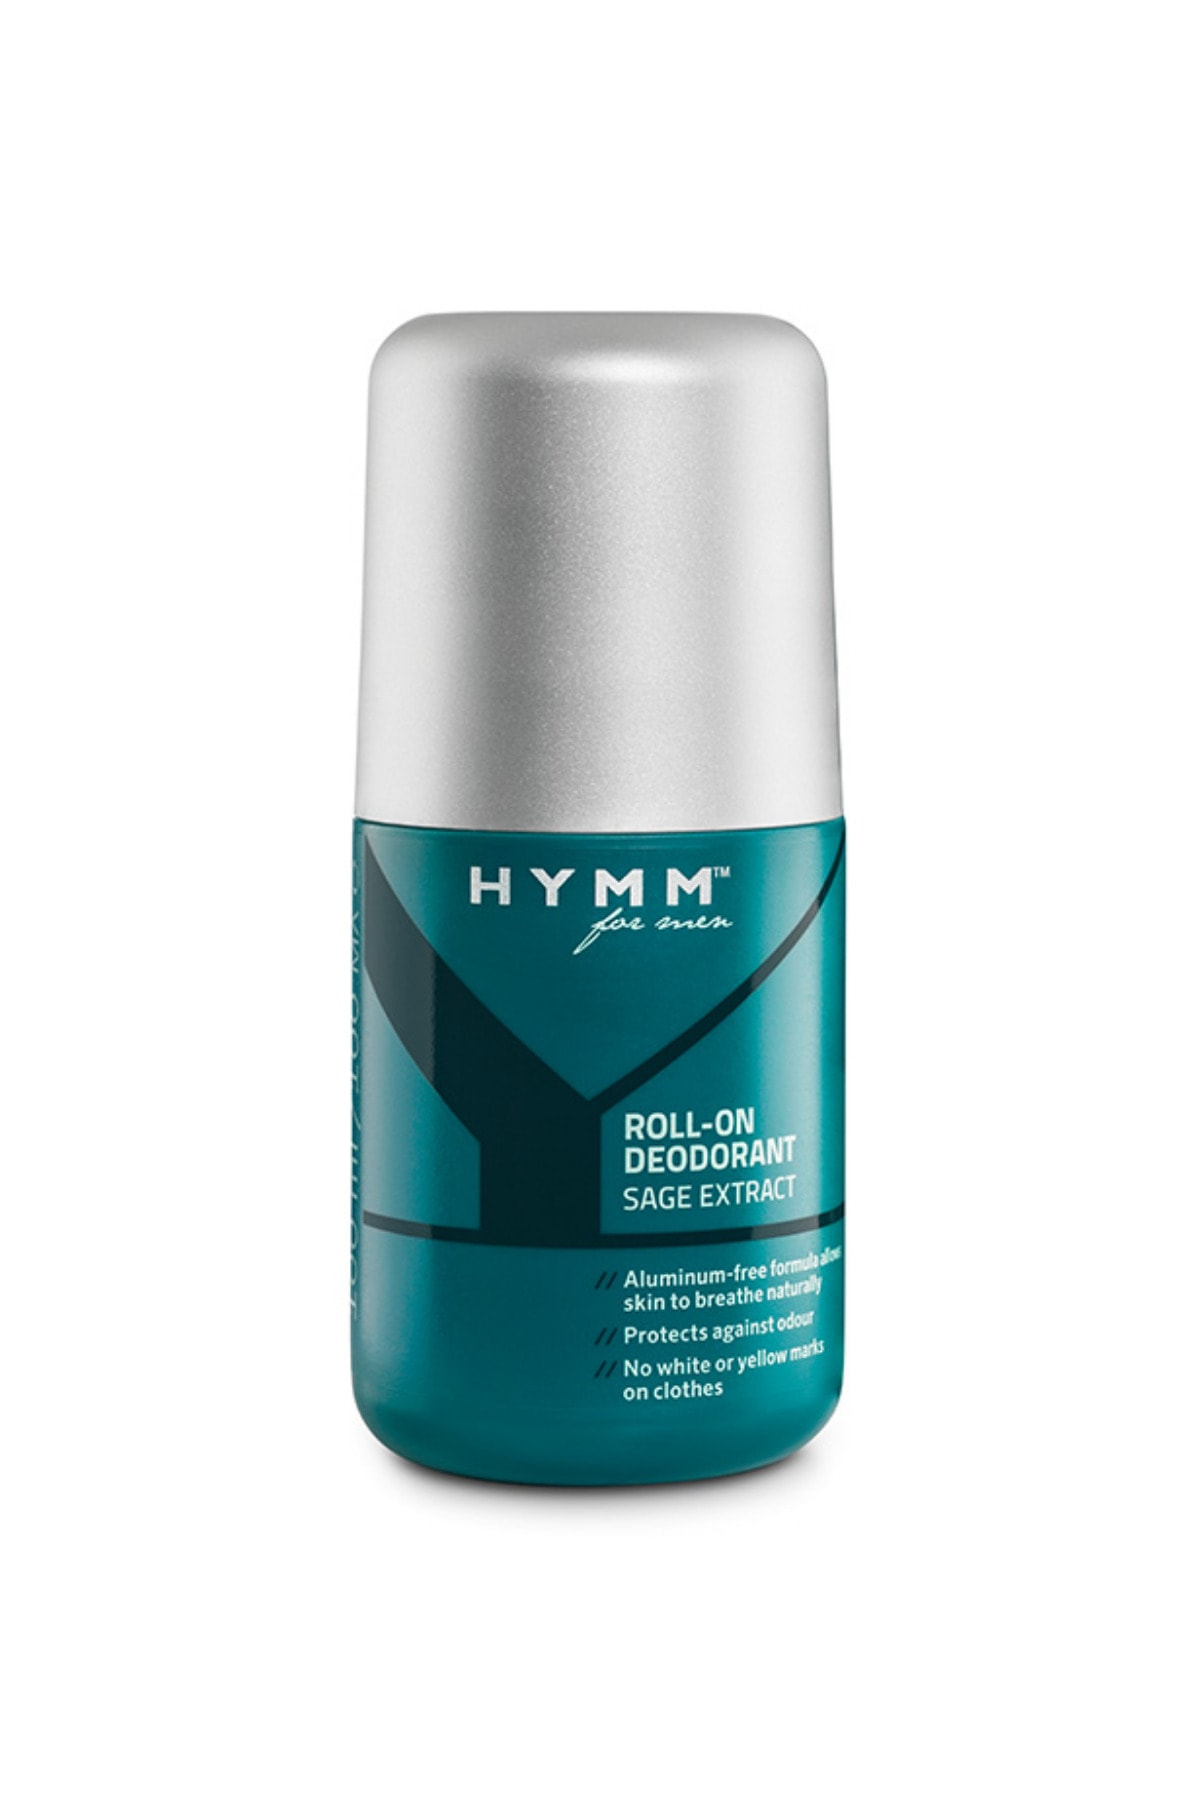 Amway For Man Roll-on Deodorant Hymm 1